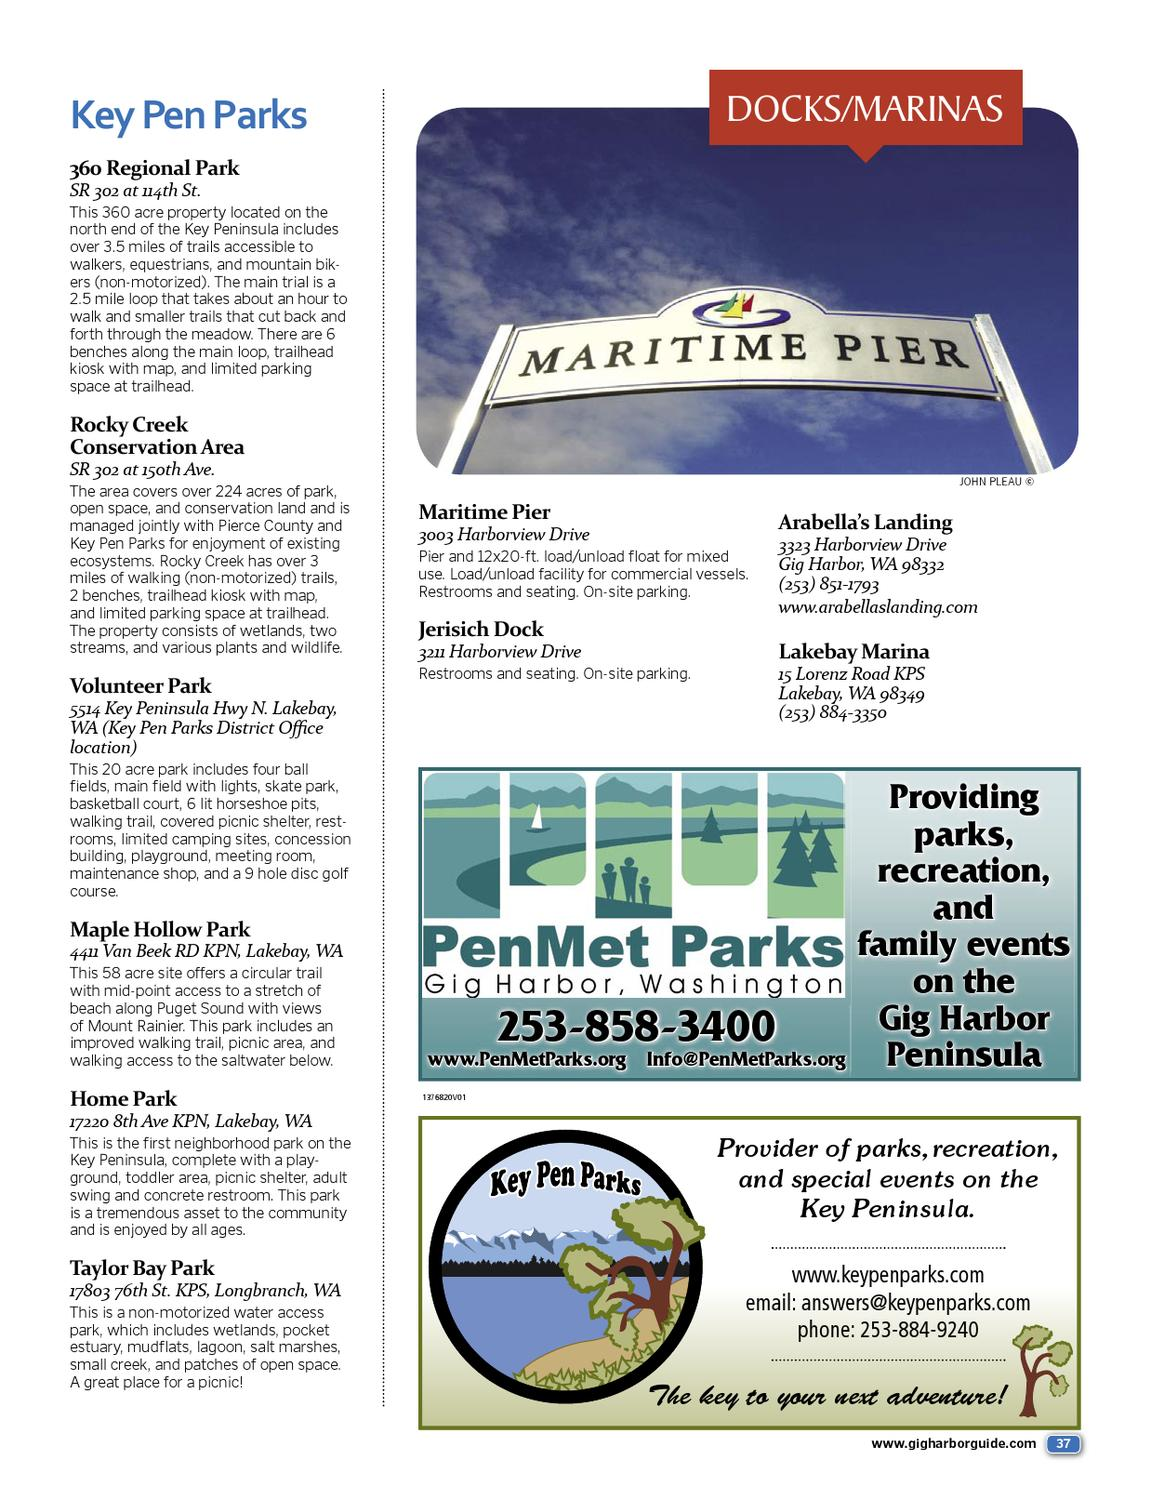 Gig Harbor Visitors Guide 2013 By Jim Appelgate